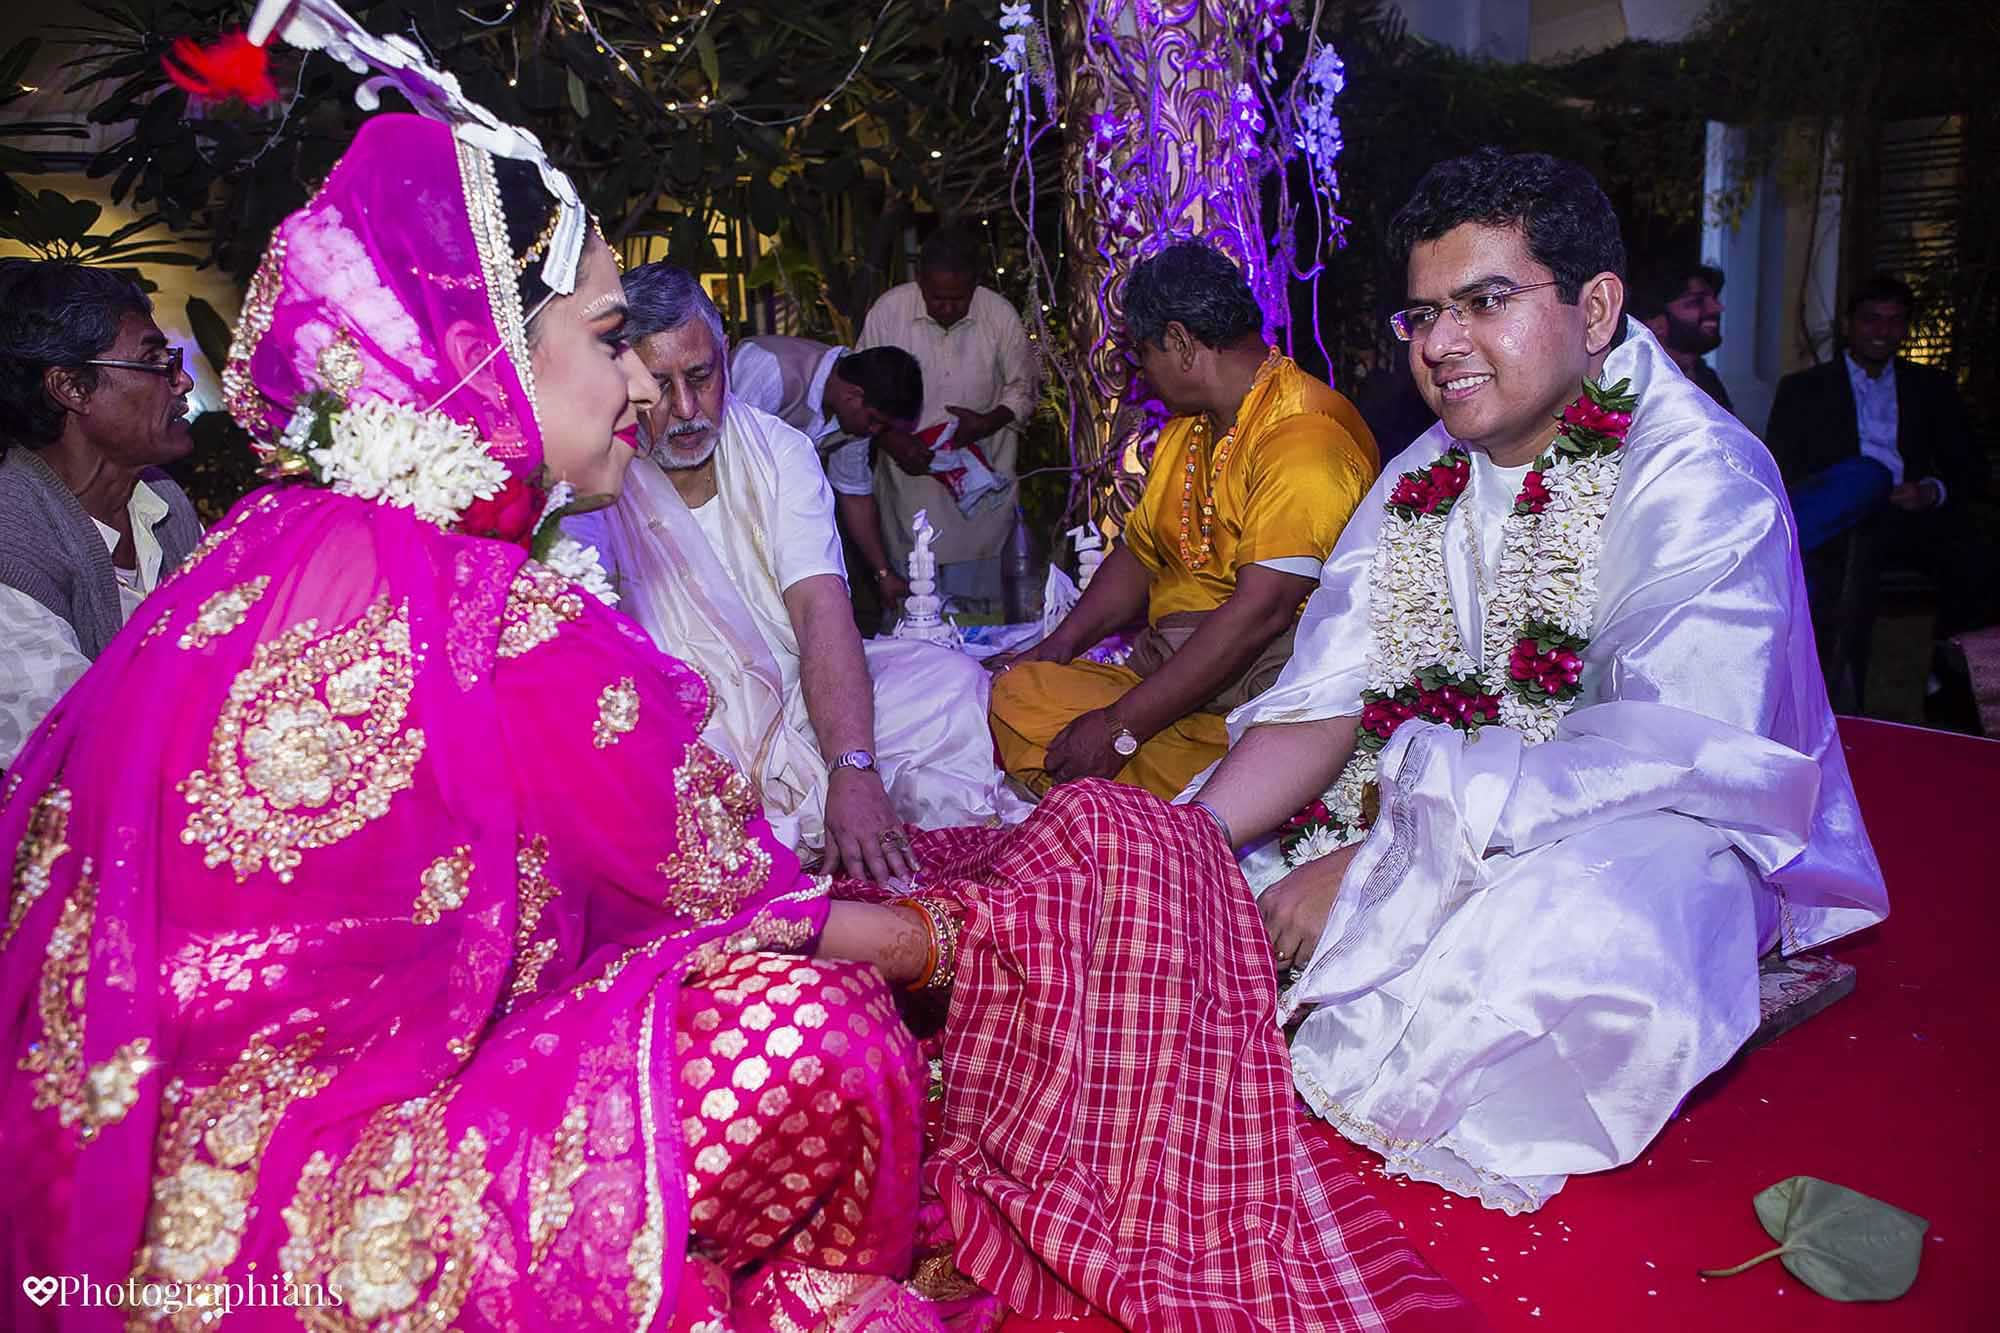 Bengali_Wedding_Photography_Kolkata_Photographians_133